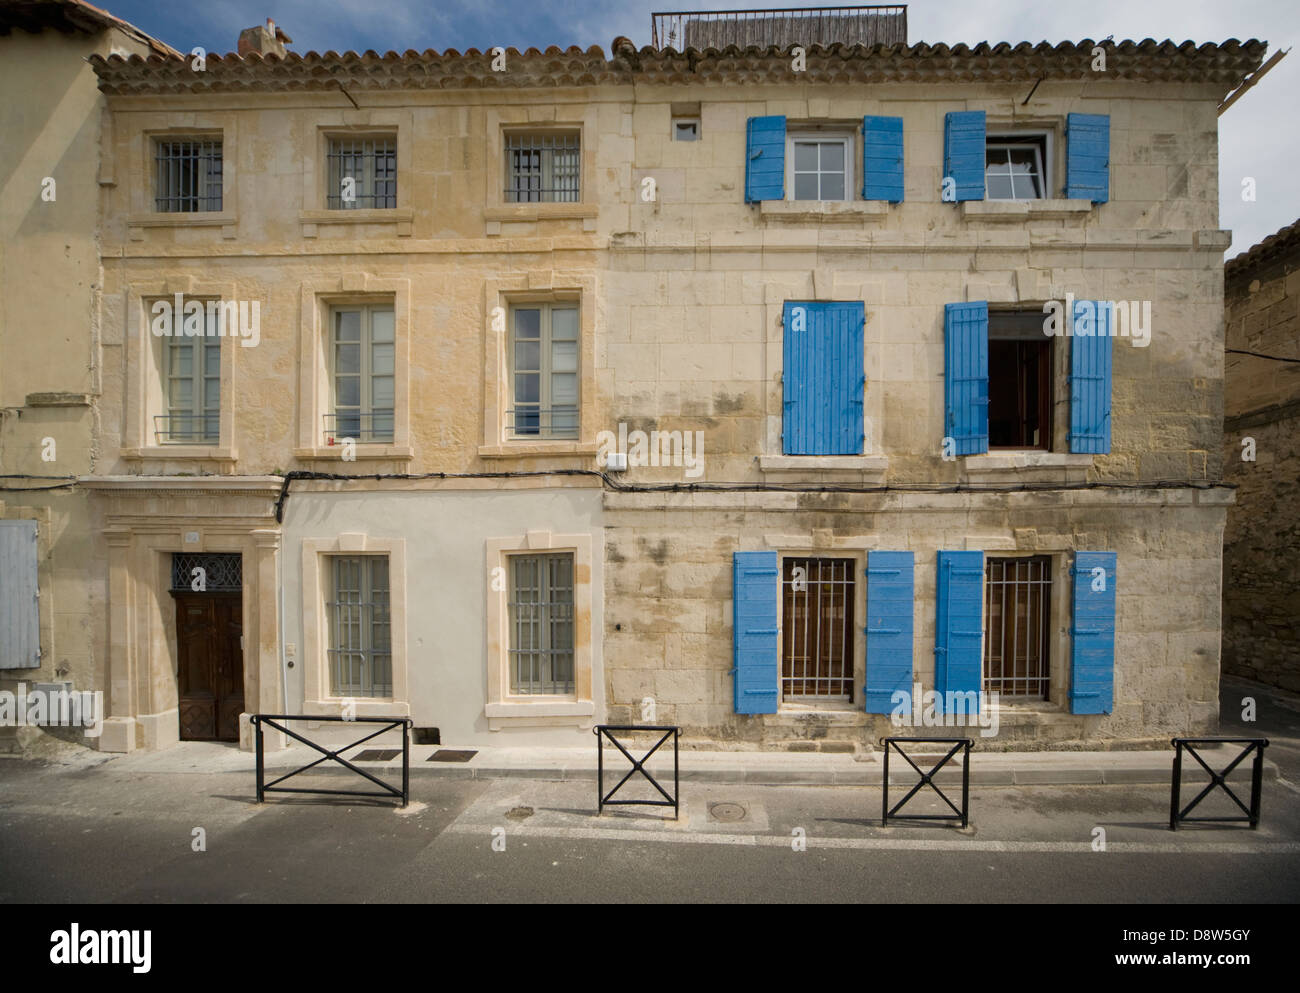 Two adjoining old stone 3-storey houses in Arles, France ...